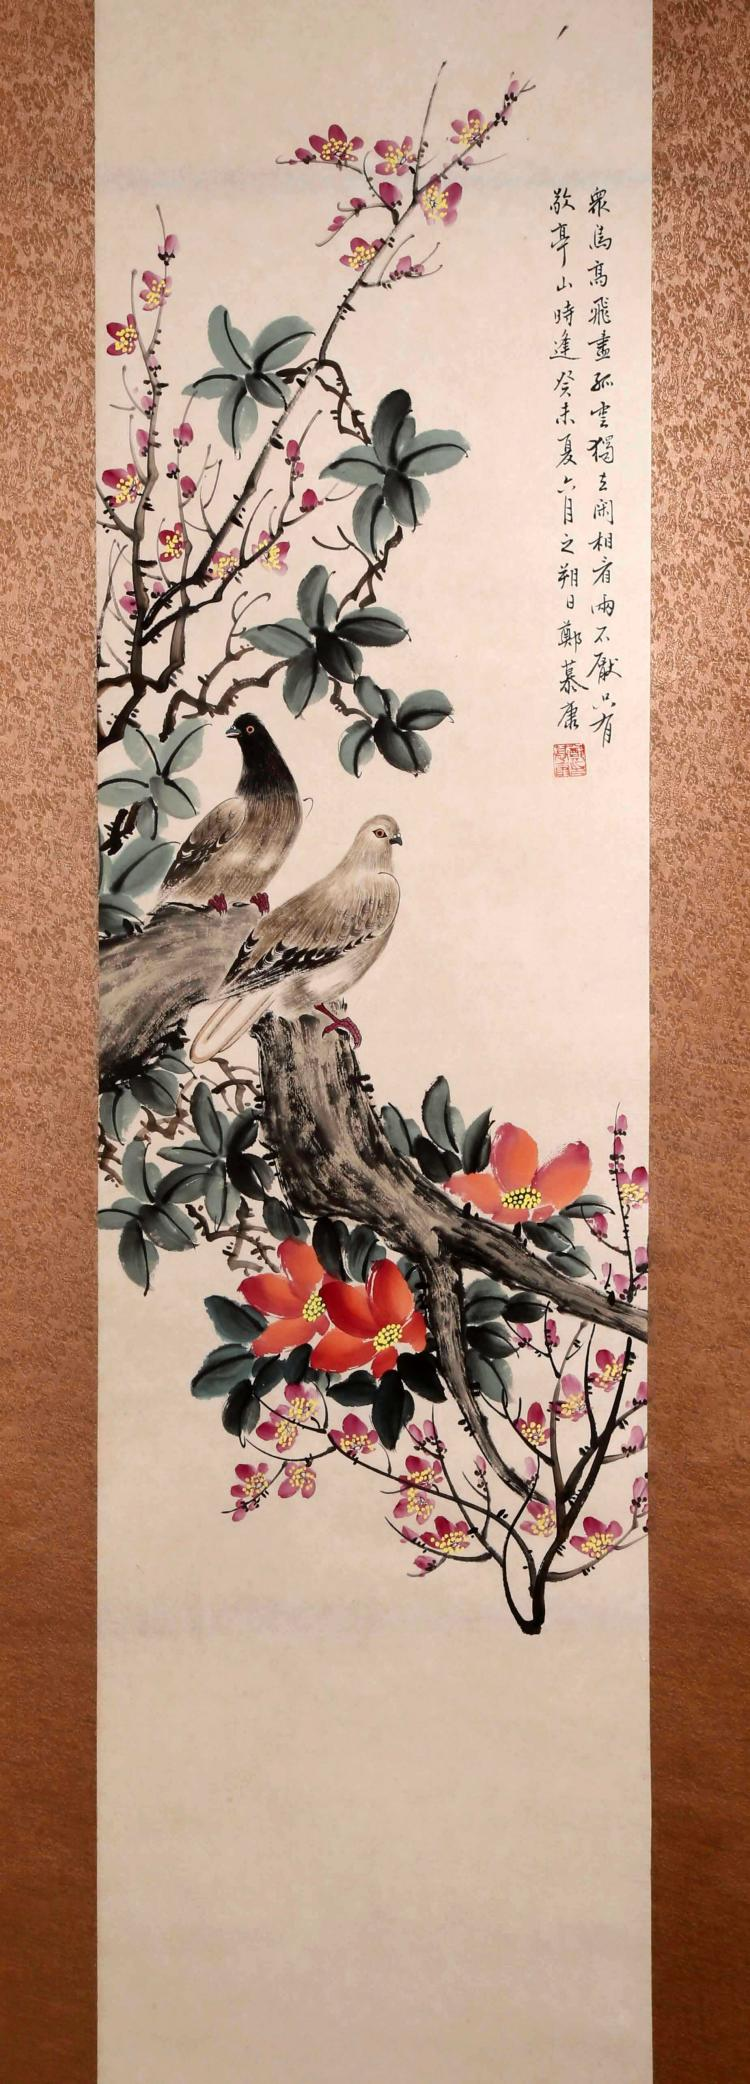 SIGNED ZHENG MUKANG (1901-1982). A INK AND COLOR ON PAPER HANGING SCROLL PAINTING.H279.